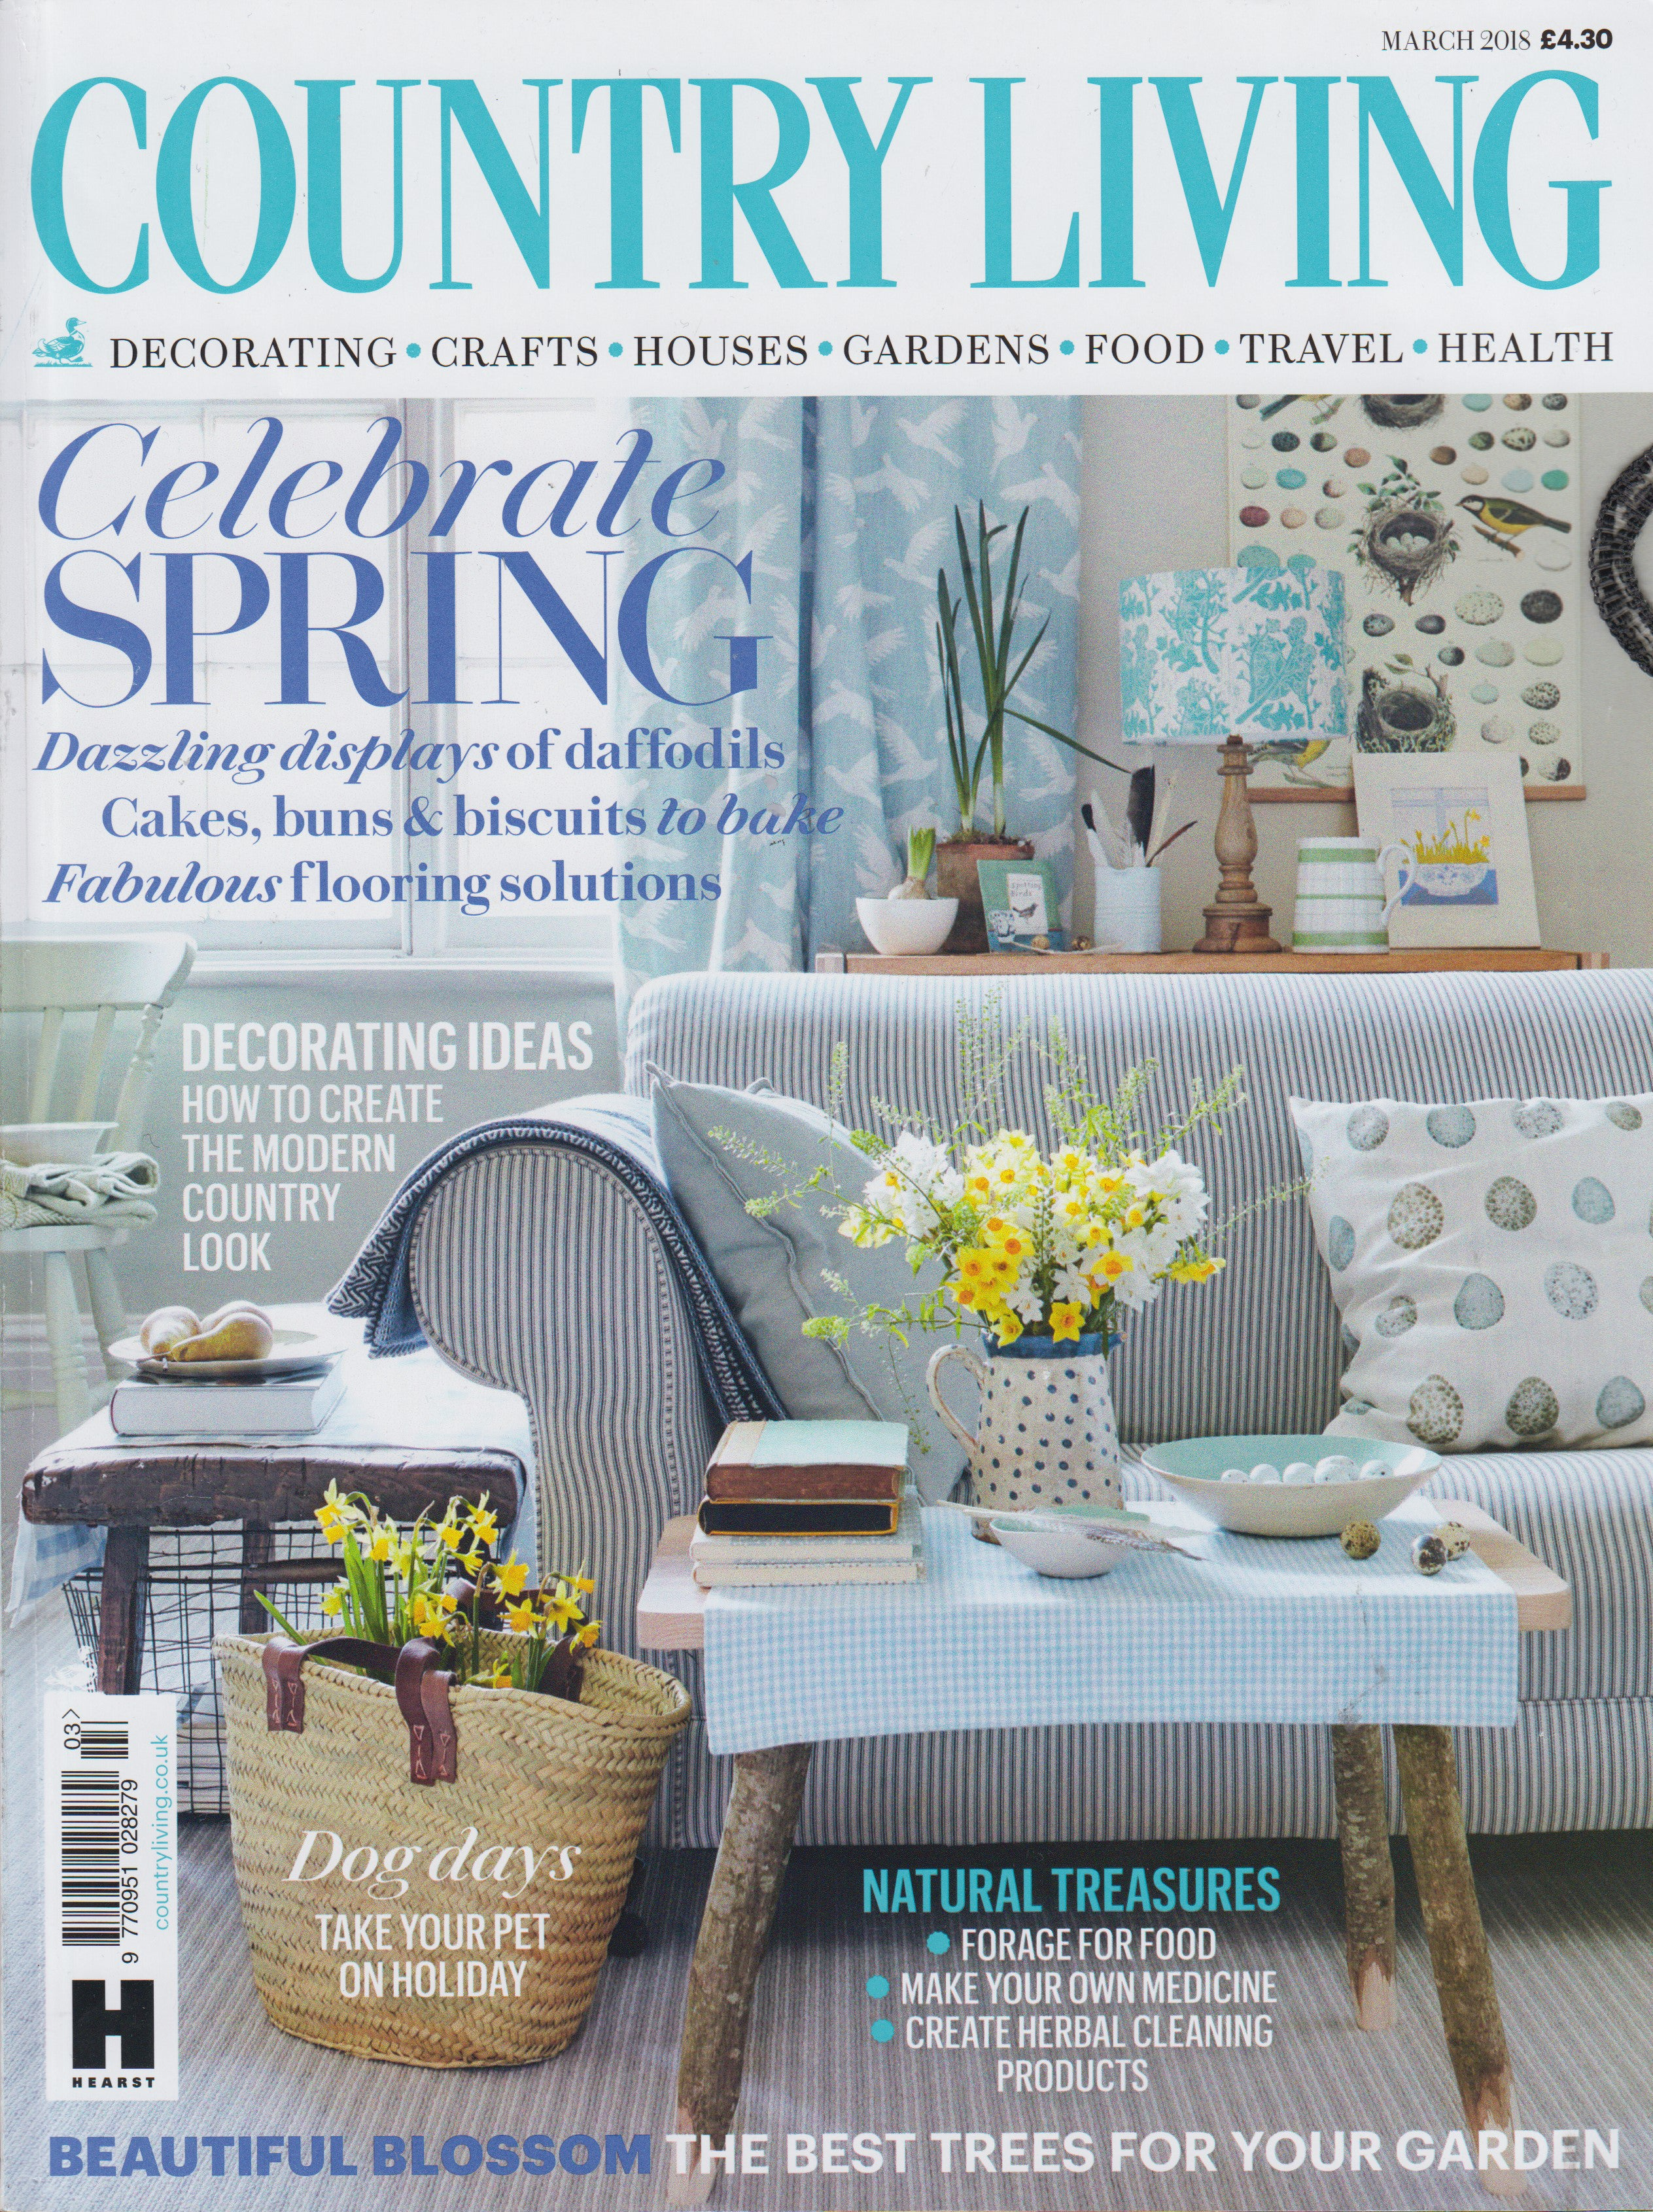 Country Living Magazine Cover Emporium featuring Kate Guy Rebecca's Cupboard apron